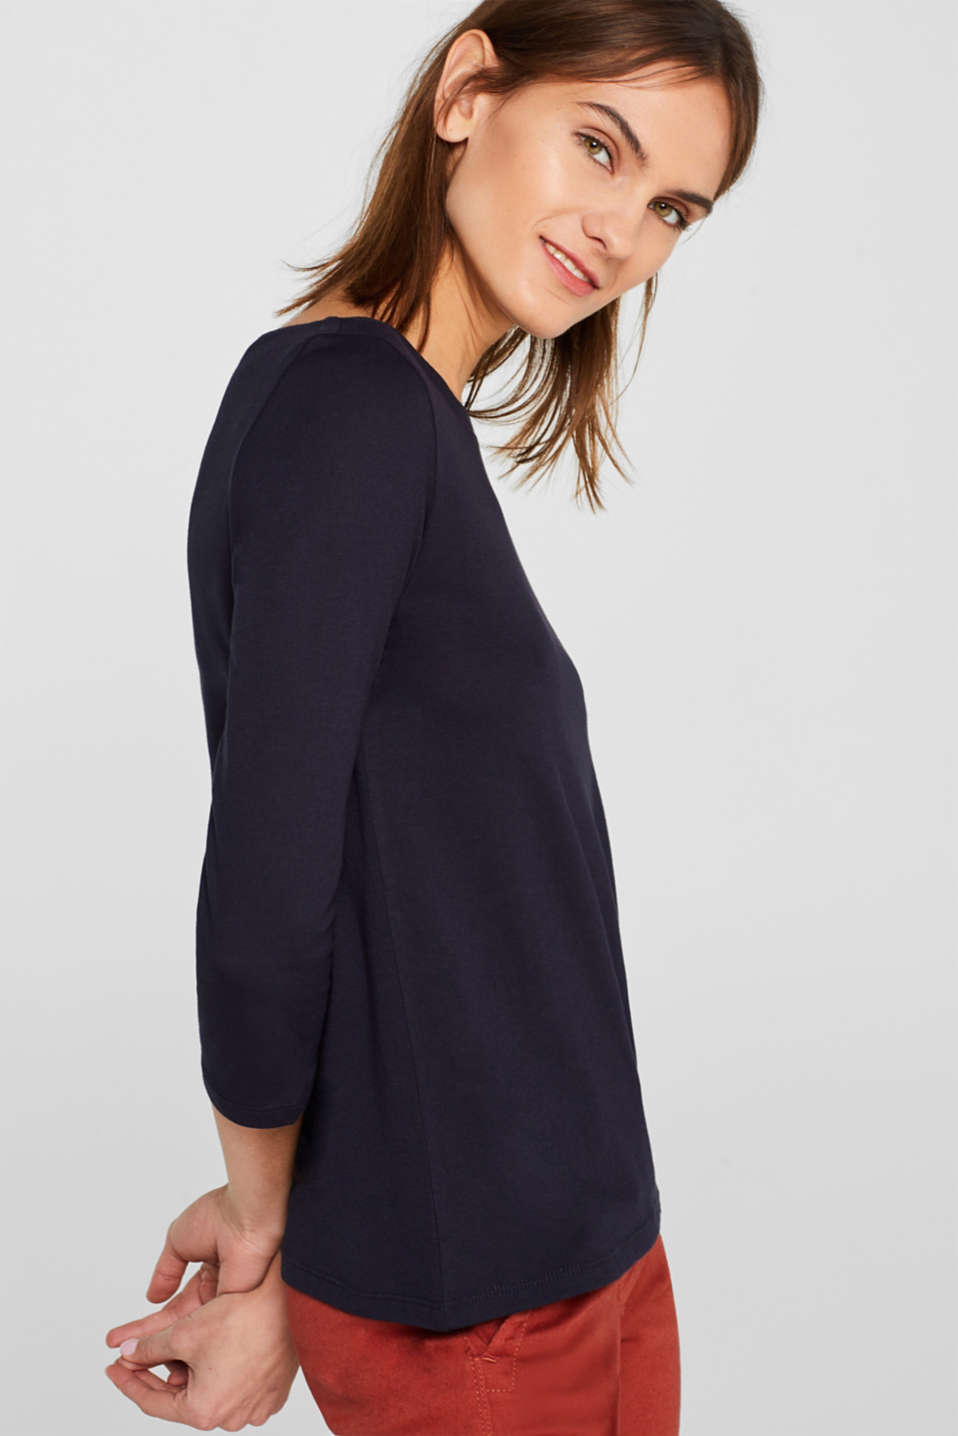 Two-pack: Long sleeve top with organic cotton, NAVY, detail image number 4